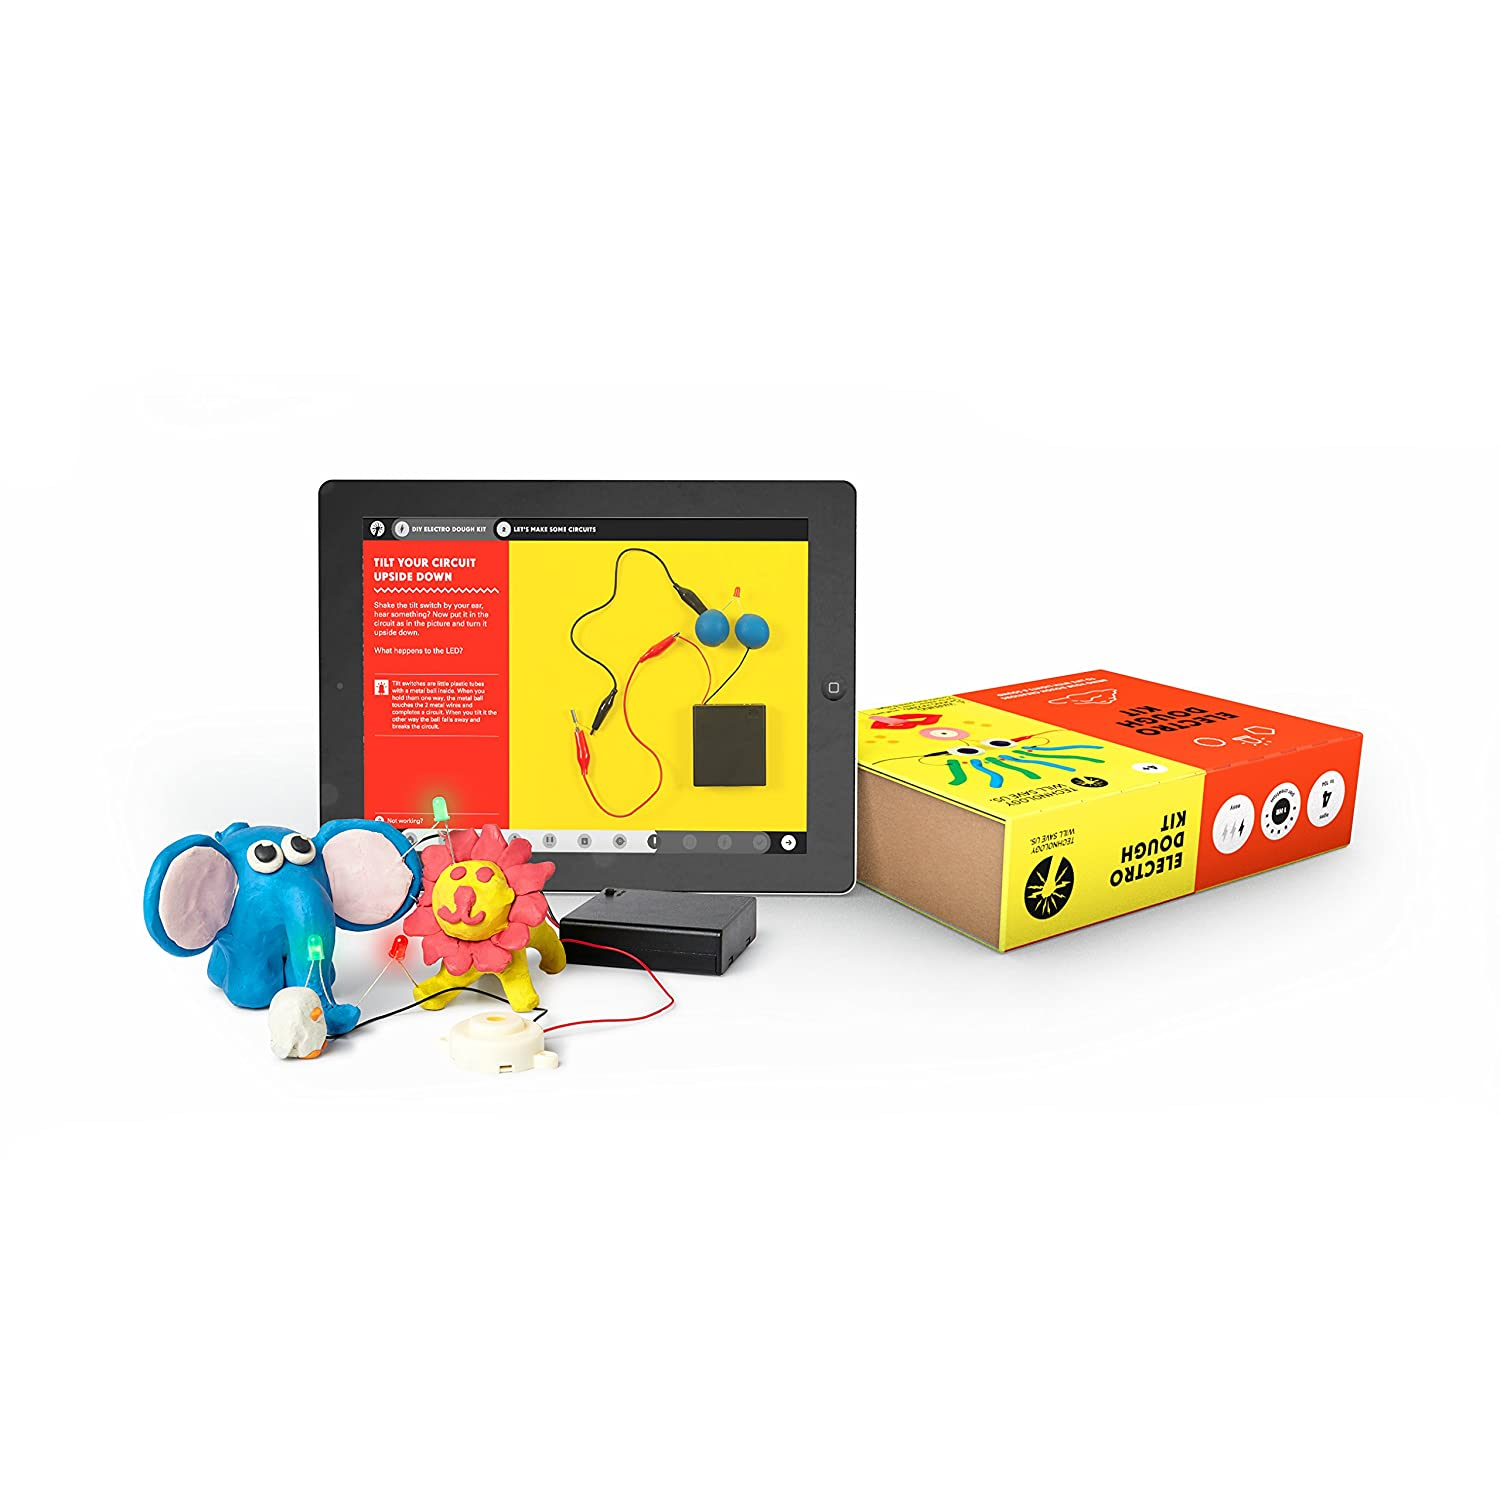 Technology Will Save Us Diy Electro Dough Kit Toys Squishy Circuits Making Conductive Games